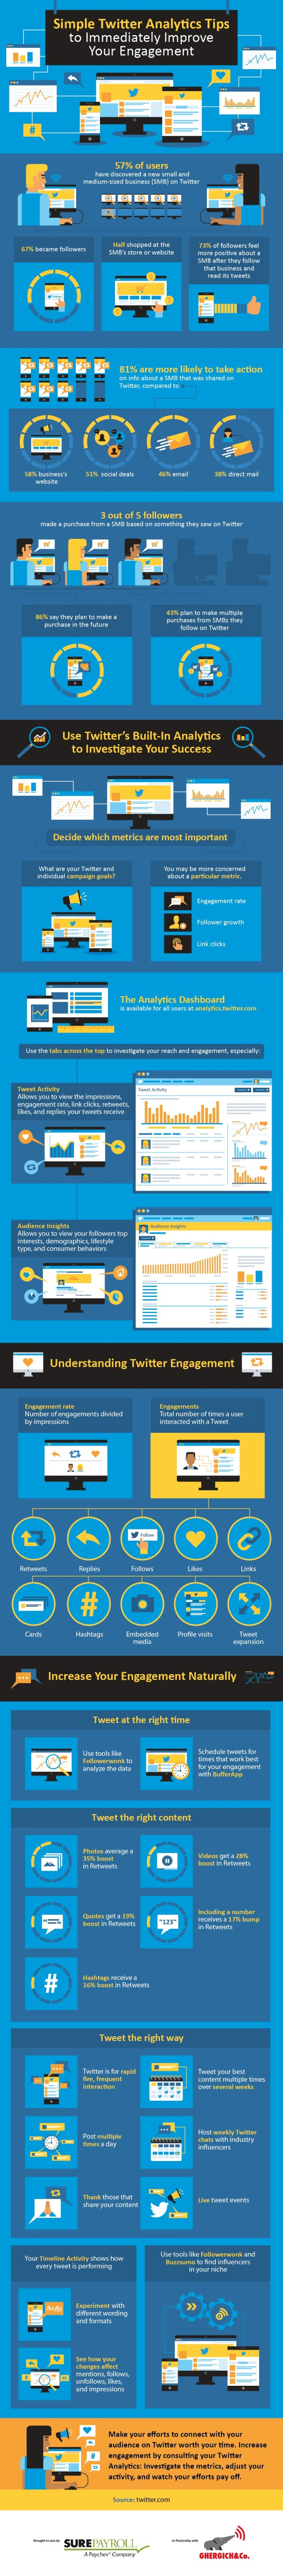 simple-twitter-analytics-tips-to-immediately-improve-your-engagement_58b89d530d666